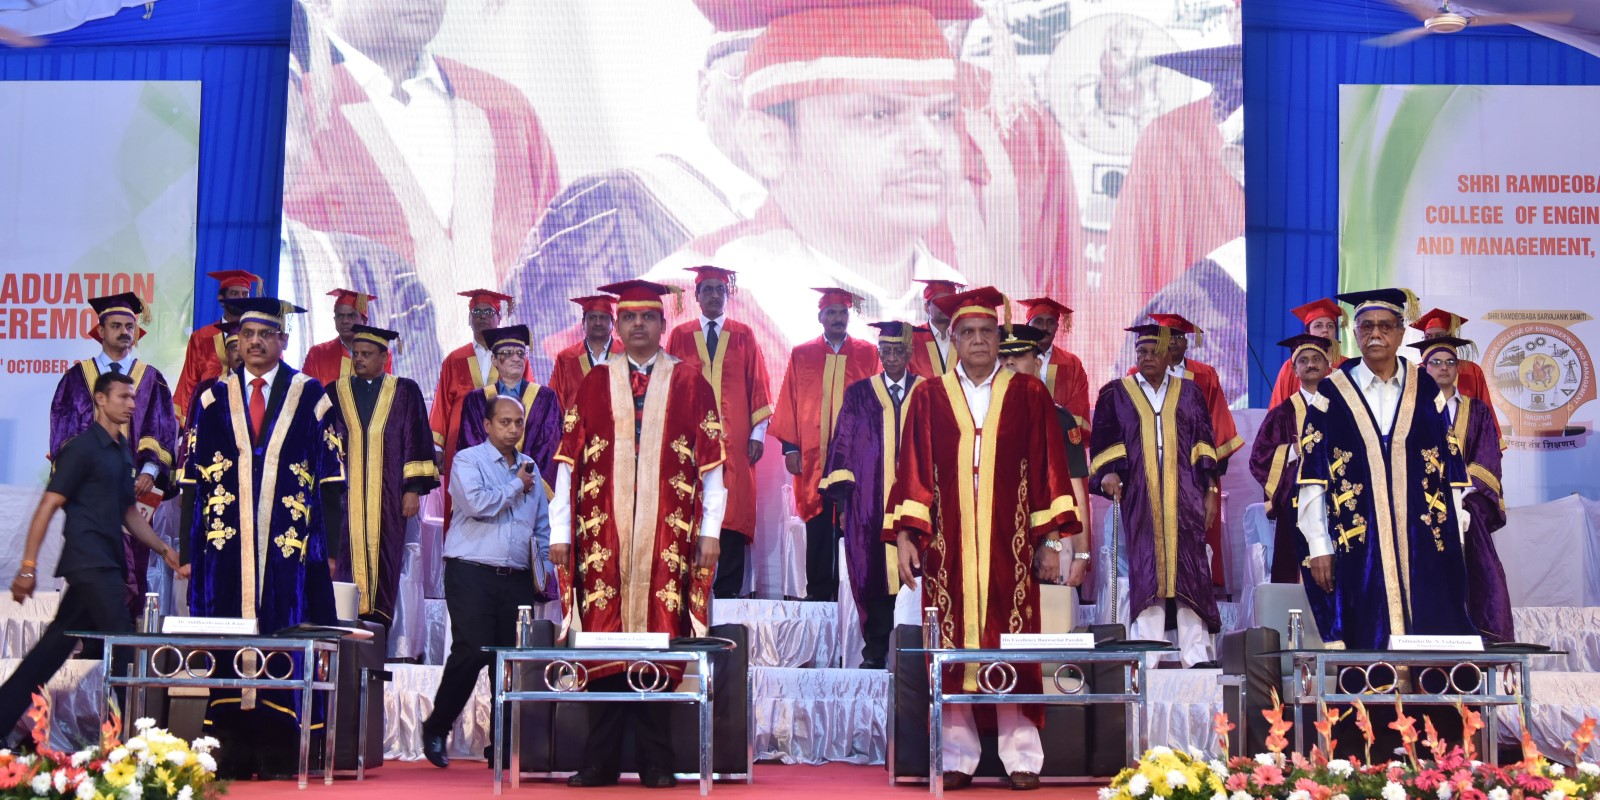 Shri Ramdeobaba College Of Engineering And Management Pin 3d Plant Cell Diagram From Textbook Image Galleries Imagekbcom Honble Maharashtra Chief Minister Devendra Fadnavis Tamilnadu Governor